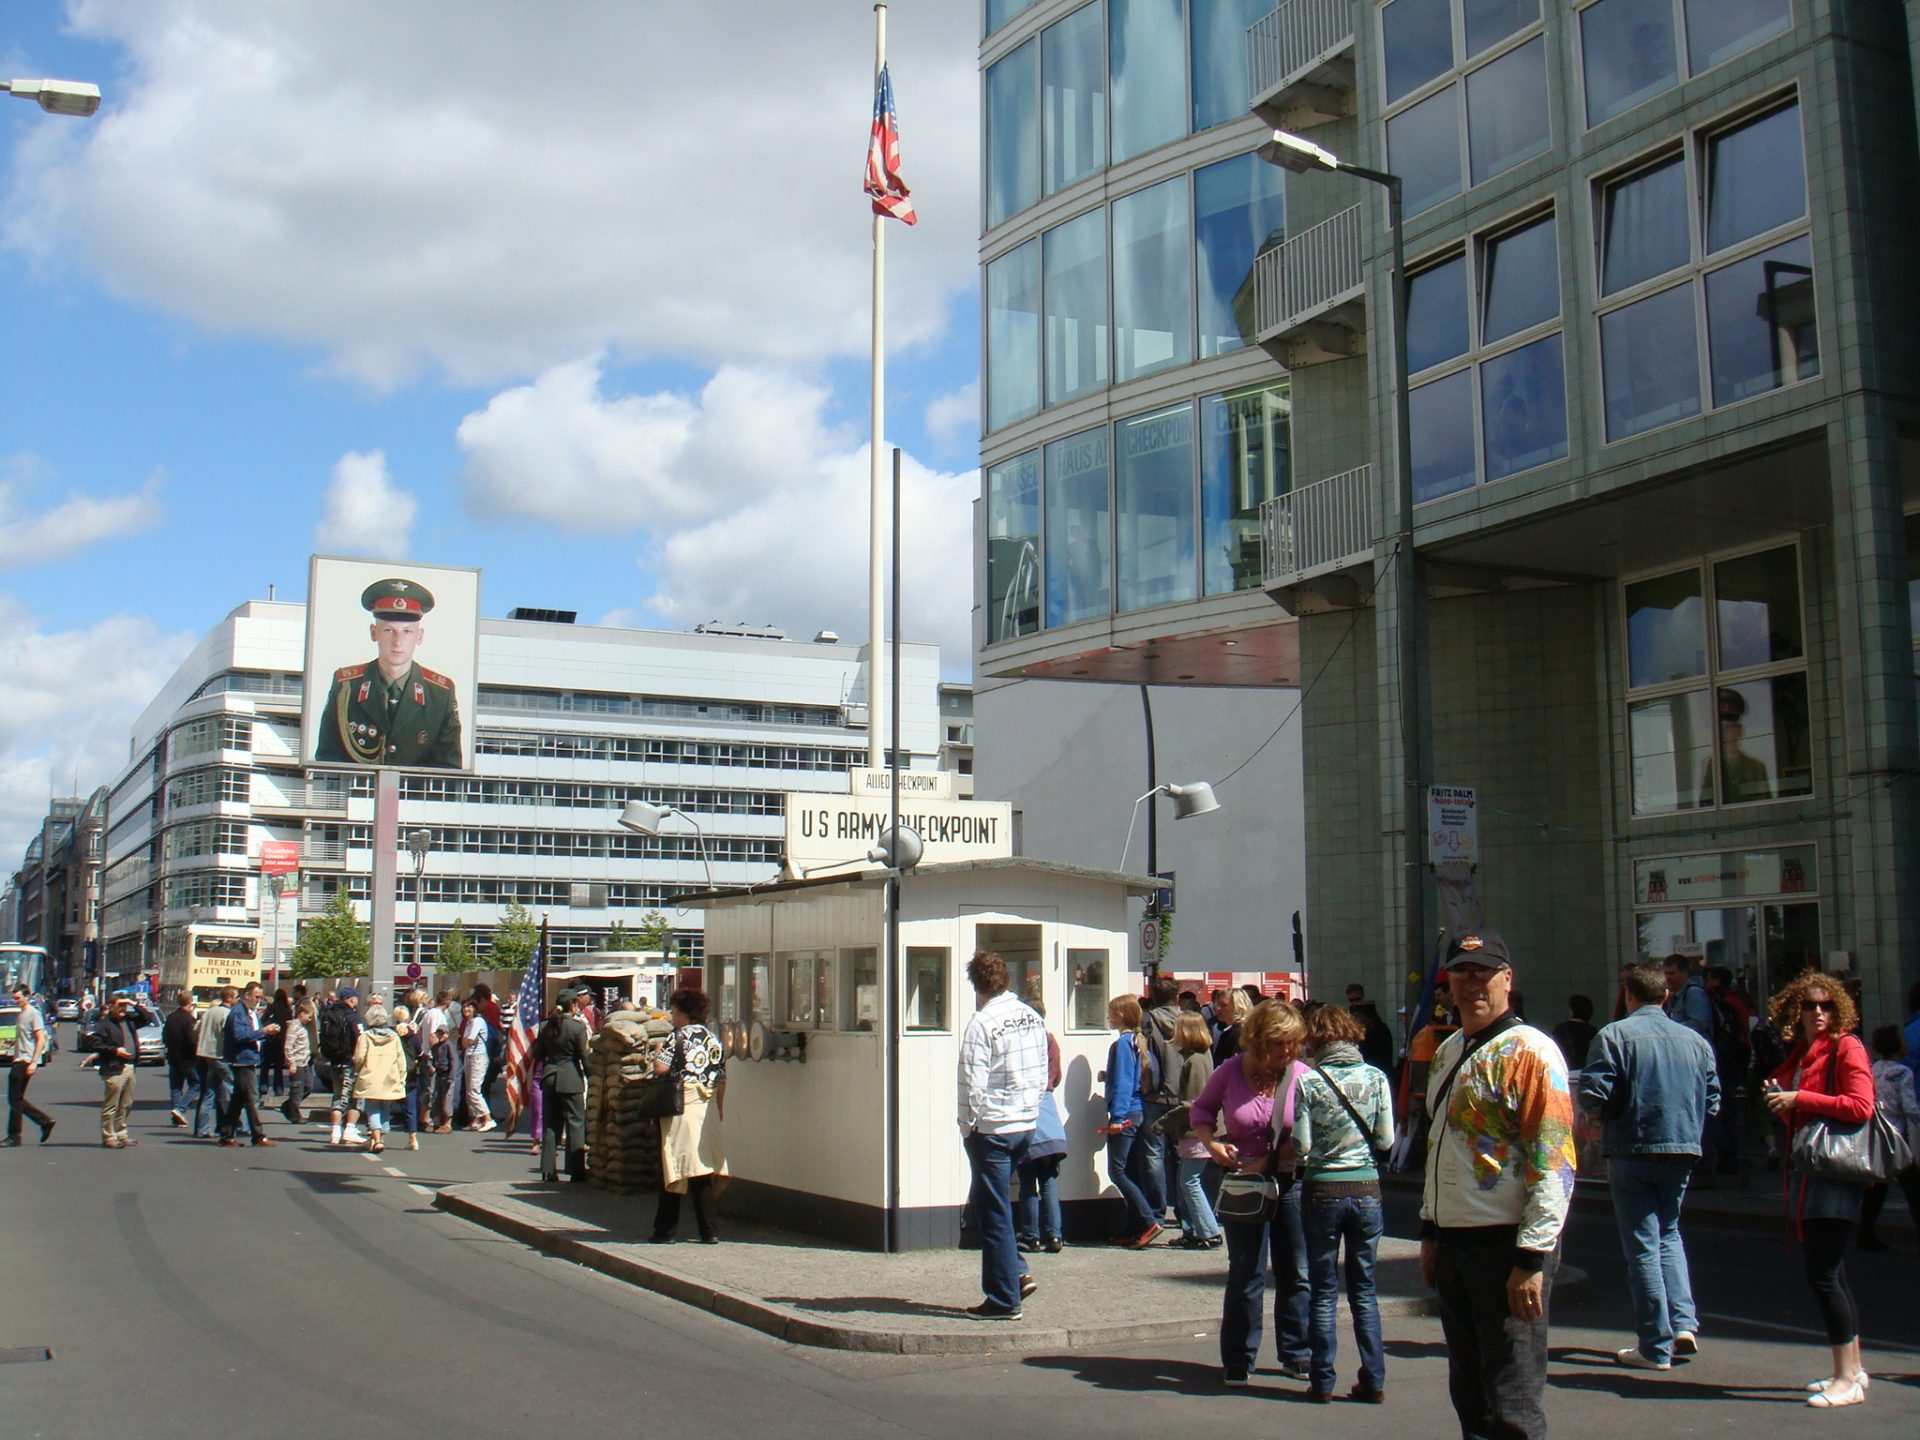 Checkpoint Charlie (and Roger) with the Soviet soldier photo above the street.